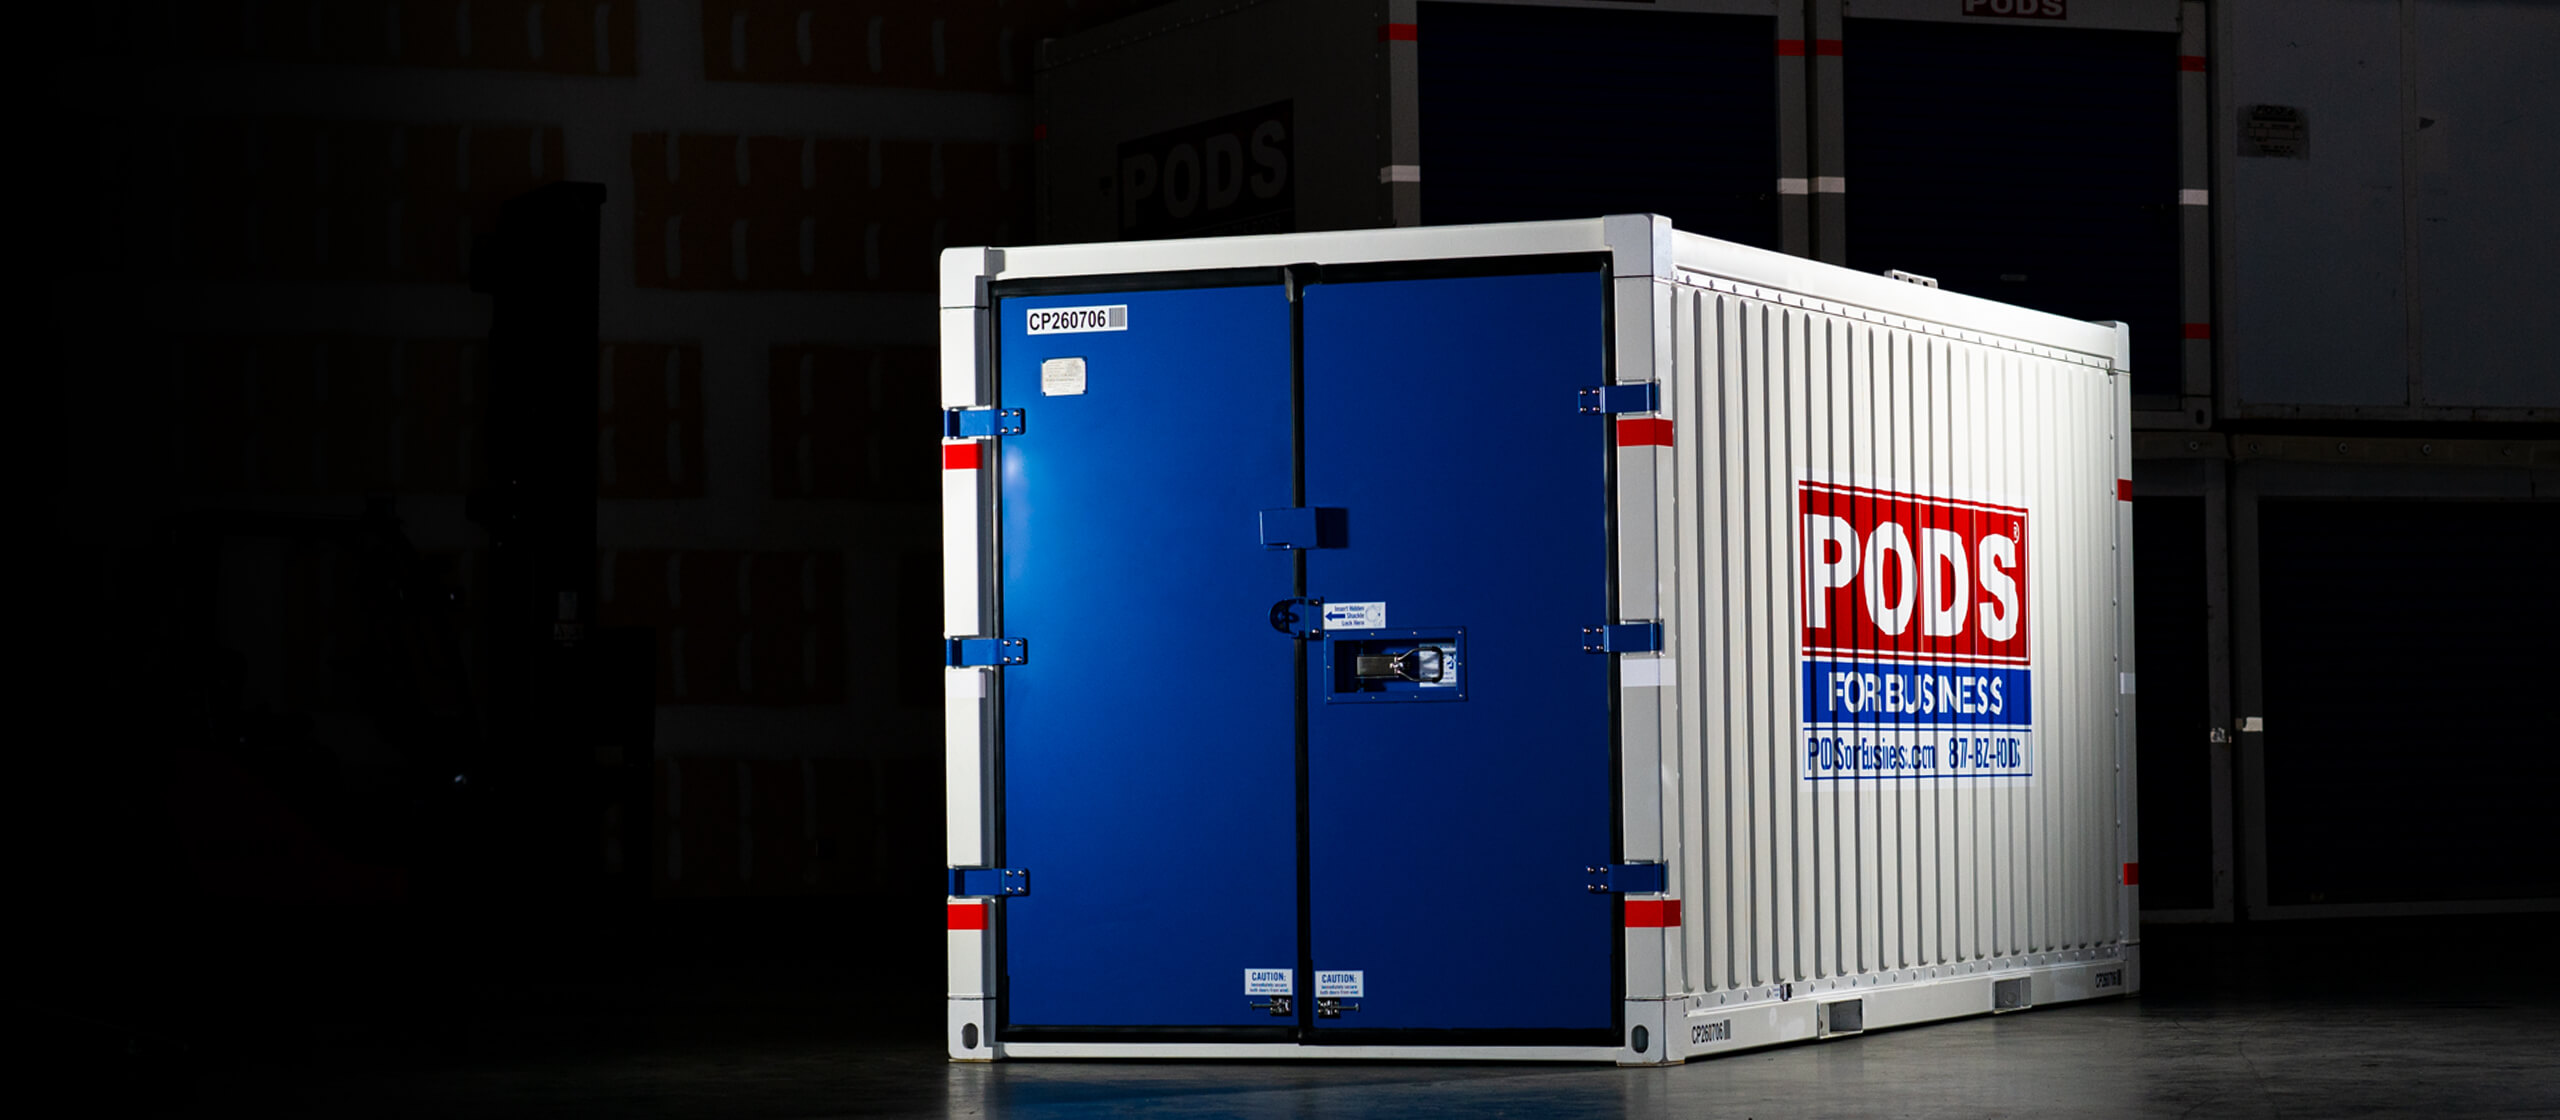 Commercial Containers For Your Business Pods